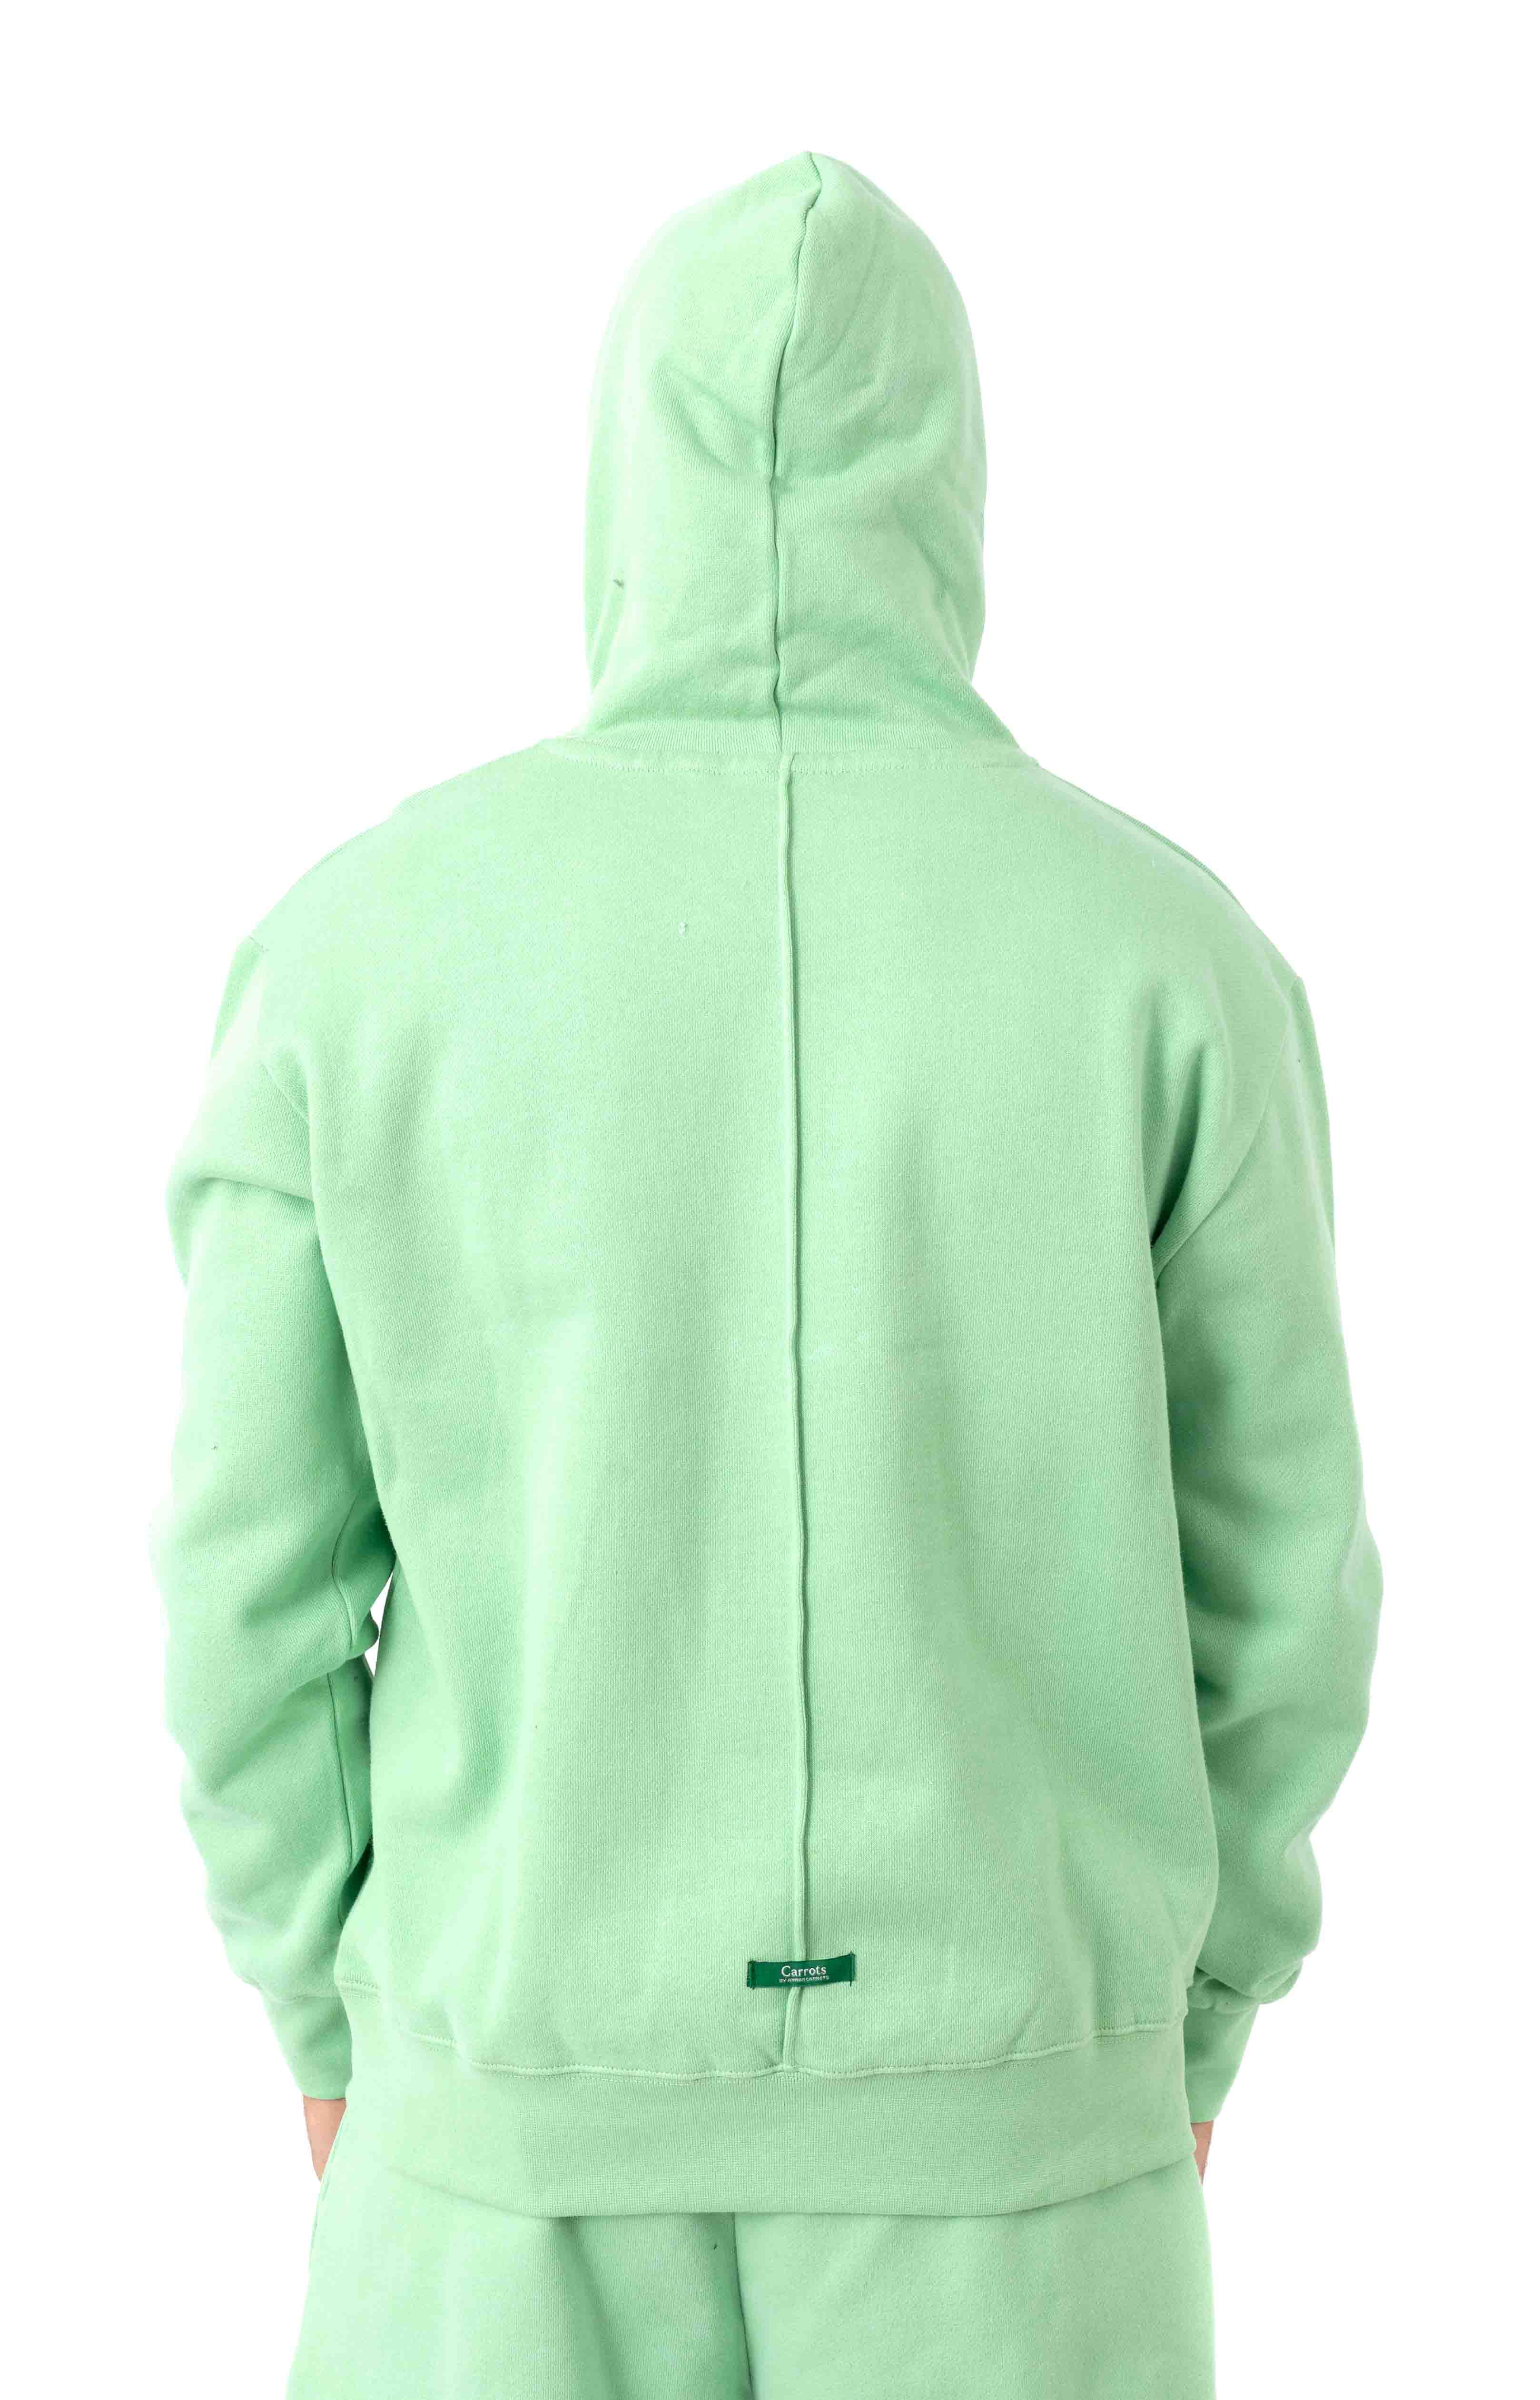 Signature Carrot Patch Pullover Hoodie - Sage Green  3